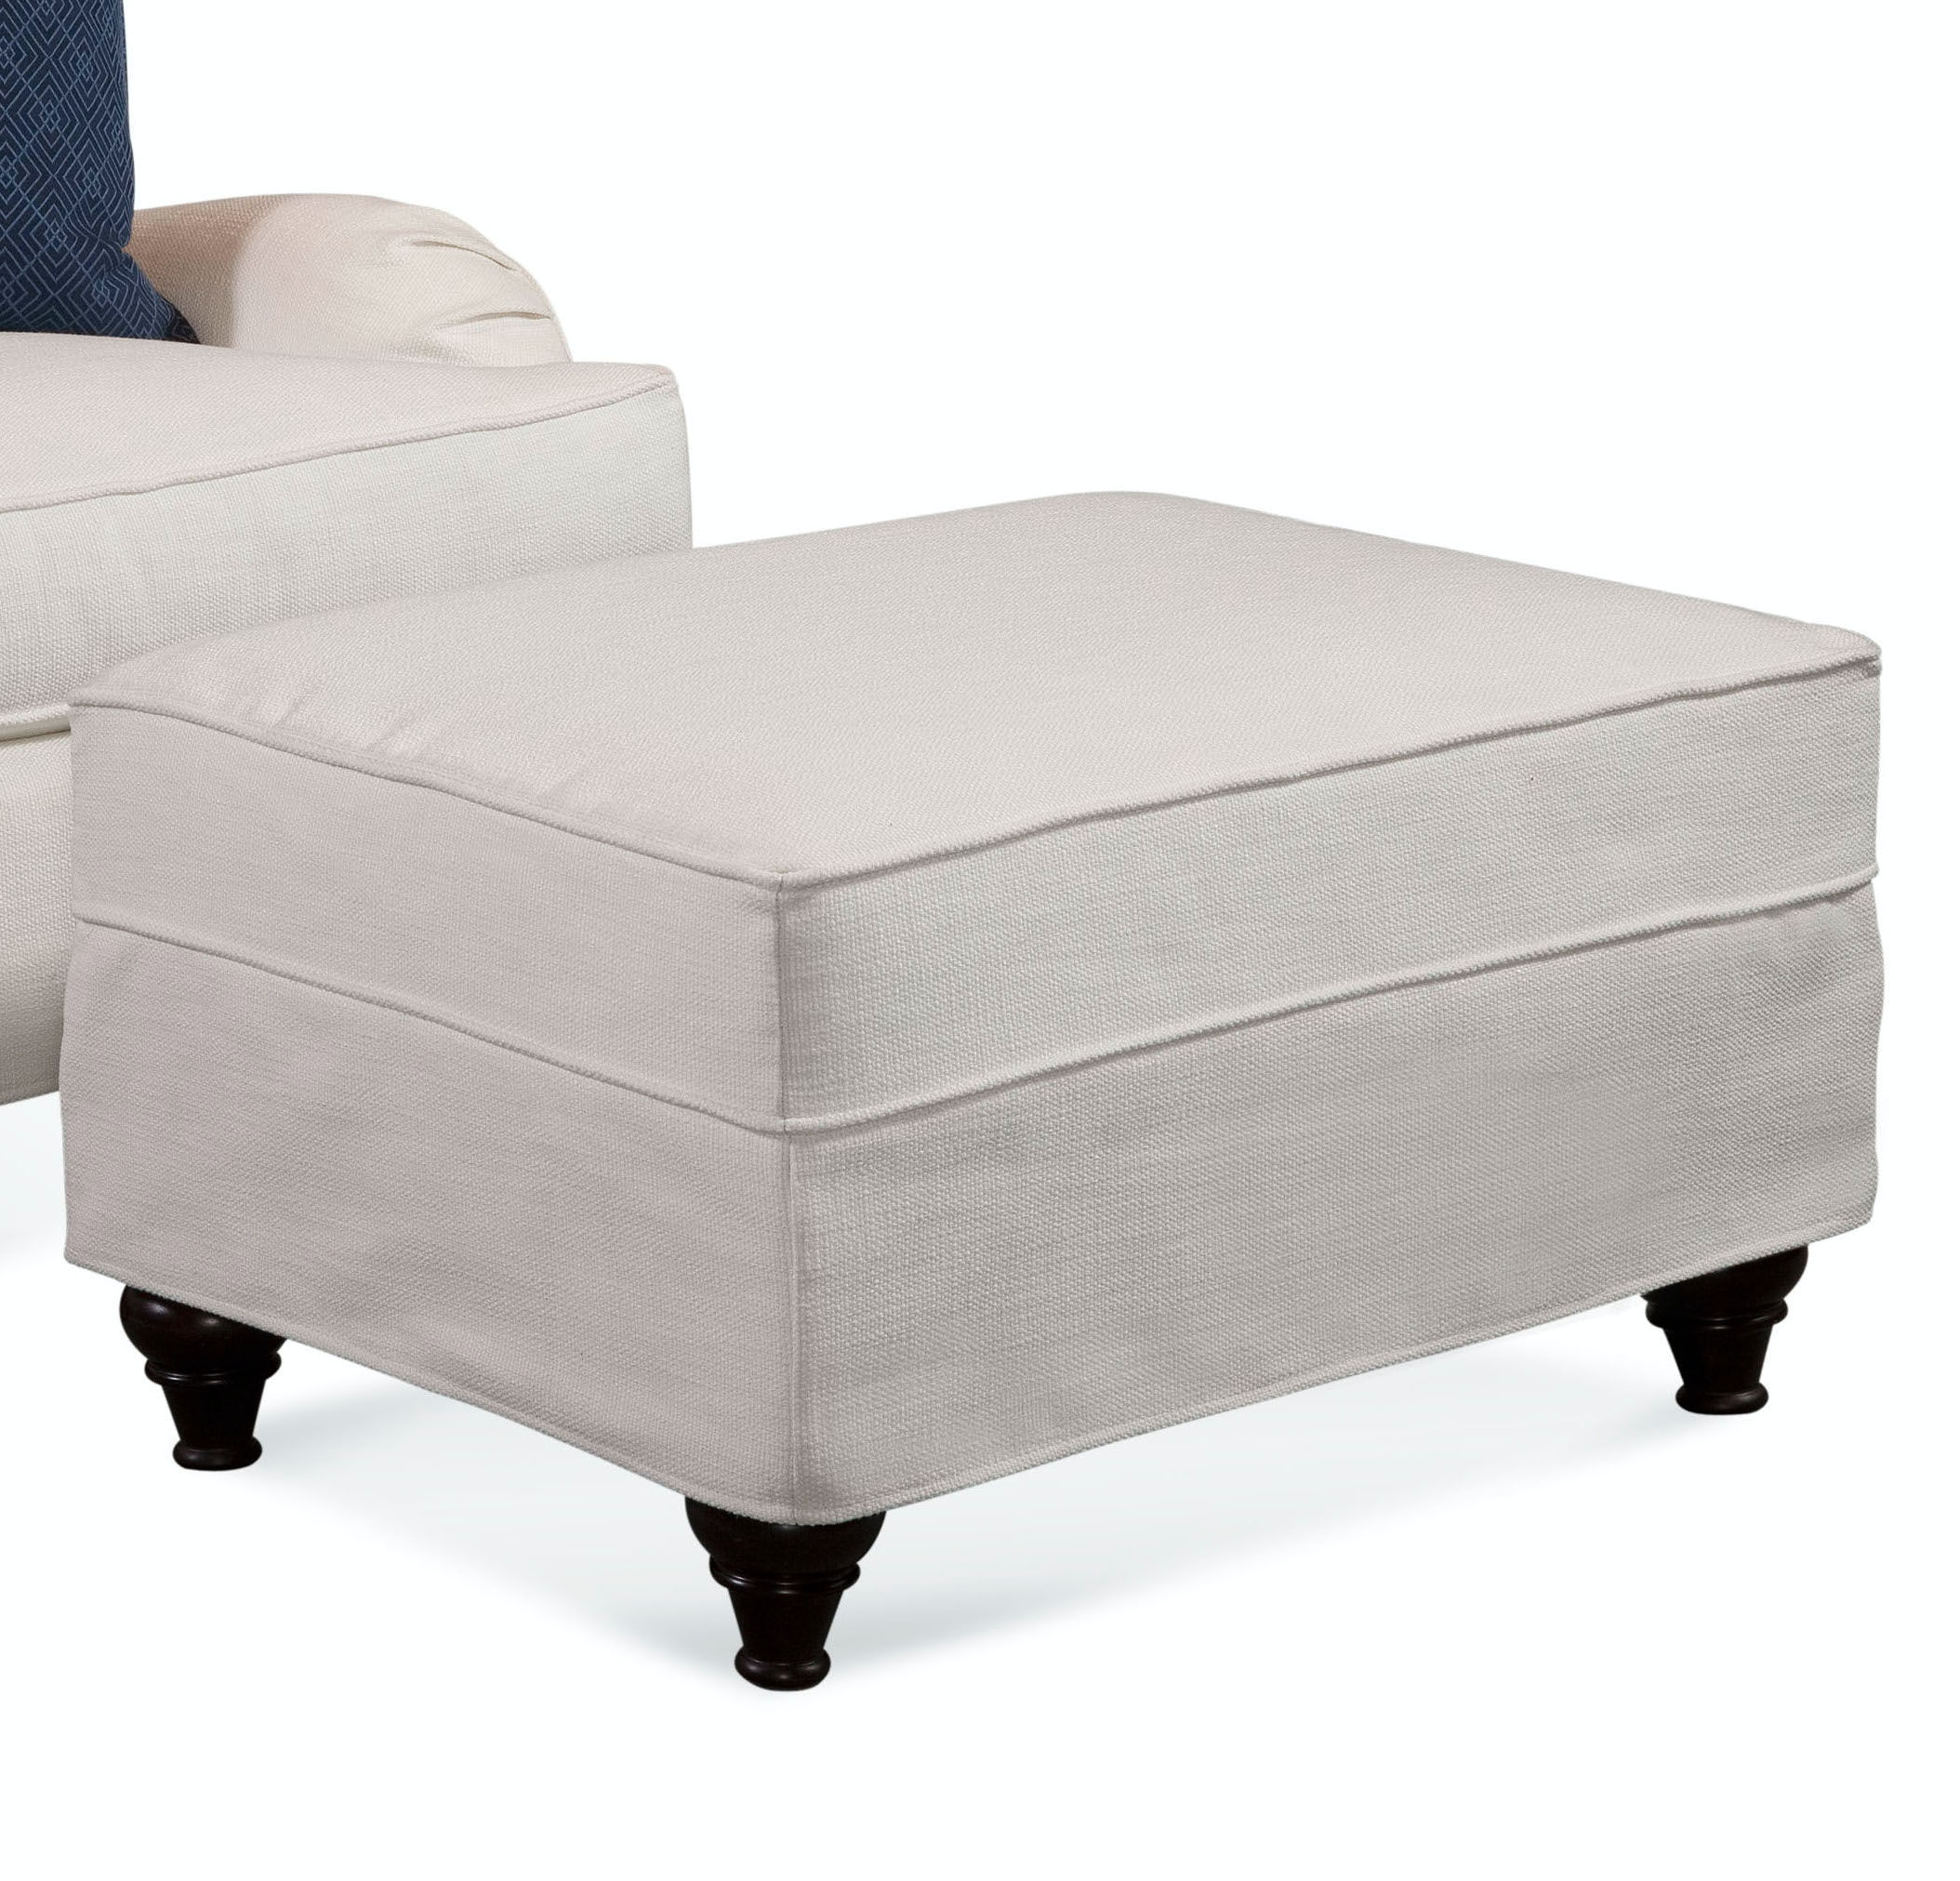 Crown Estate Ottoman with Slipcover 712-009XP